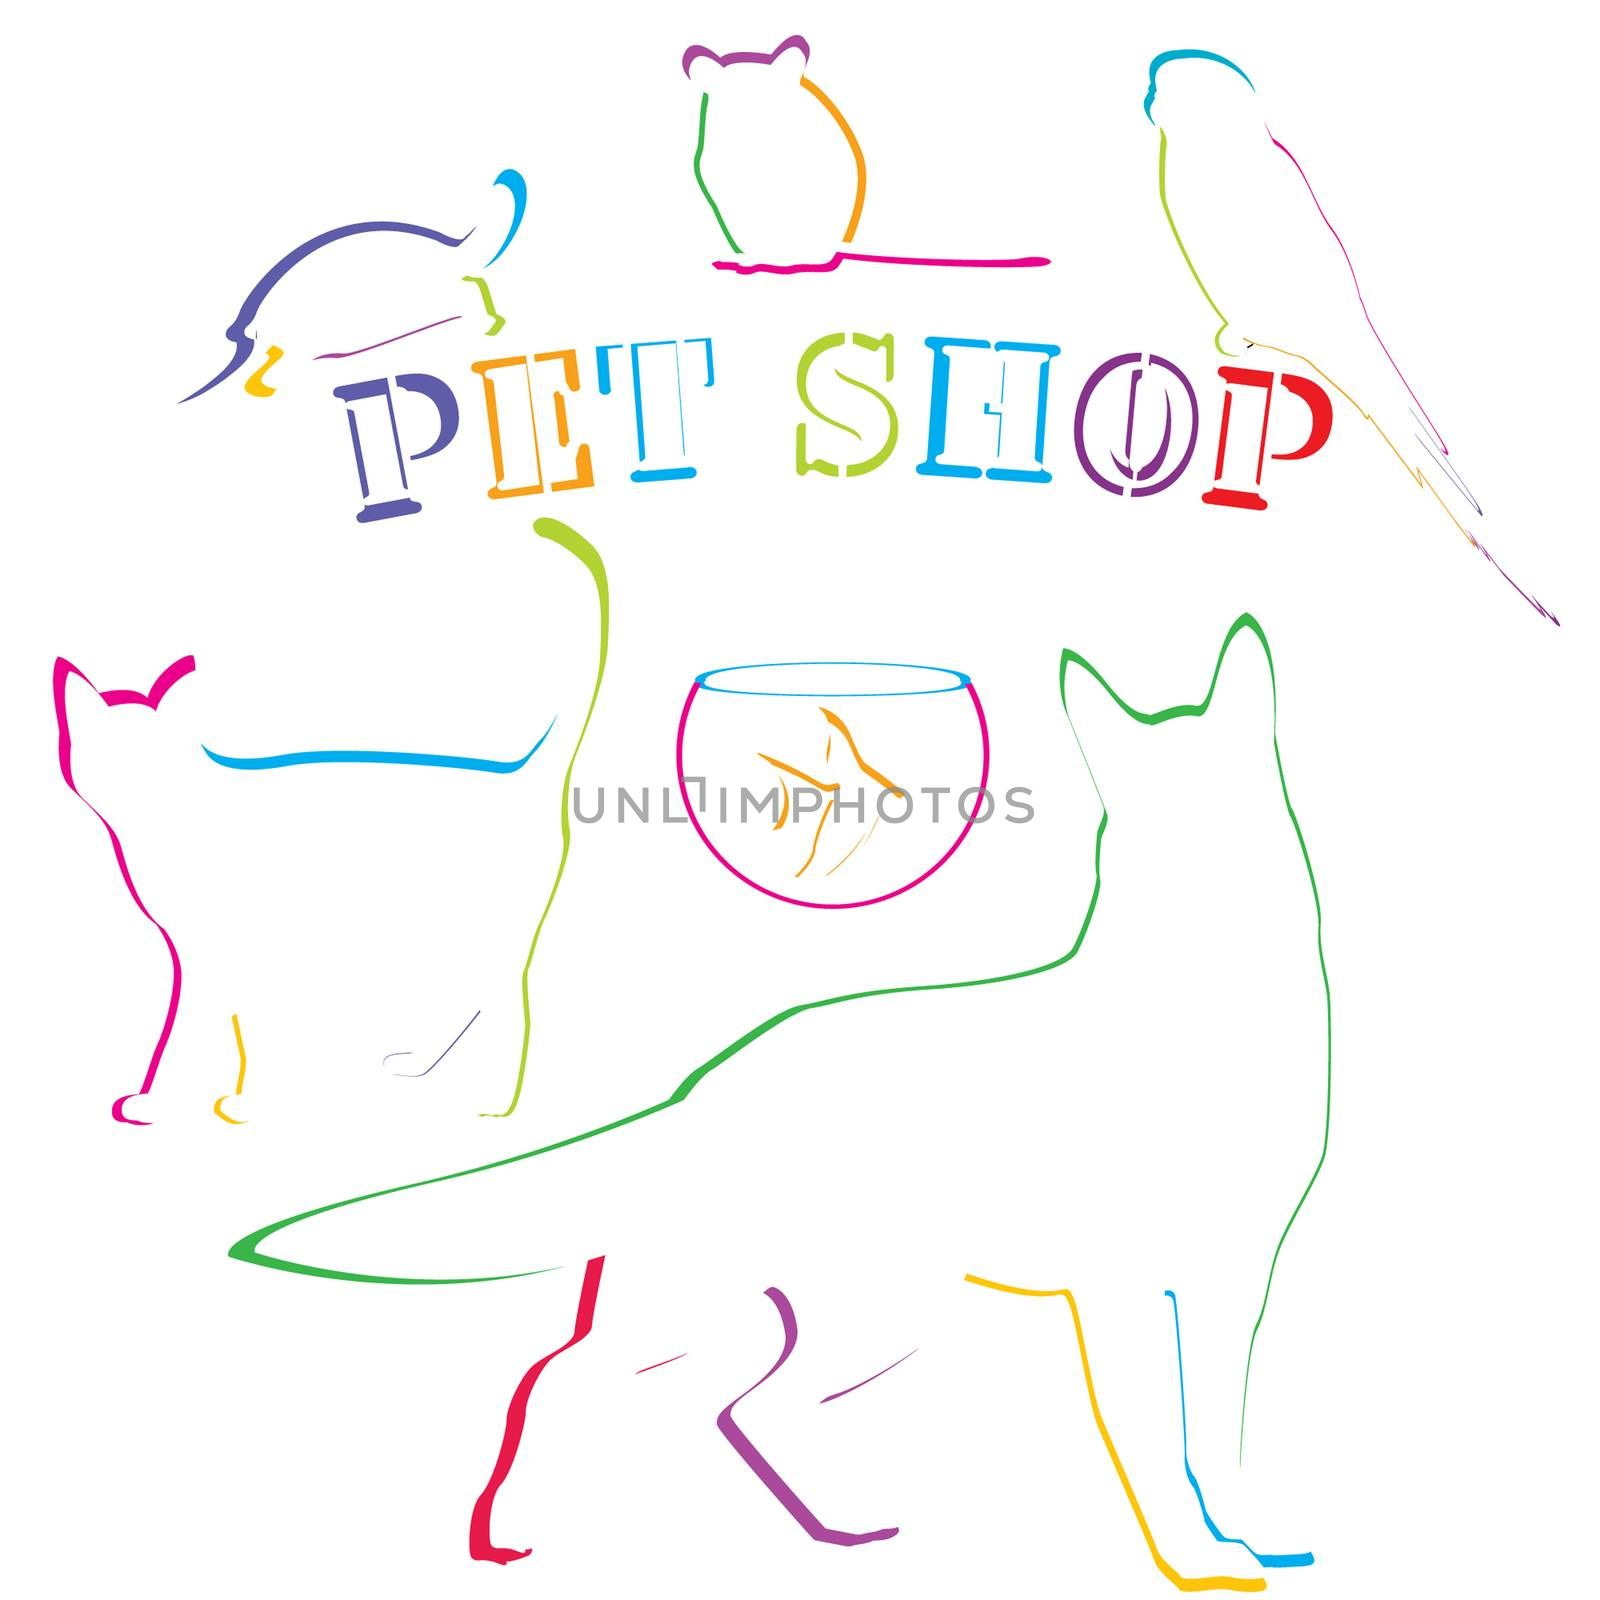 Pet shop design with colored hand drawn pets